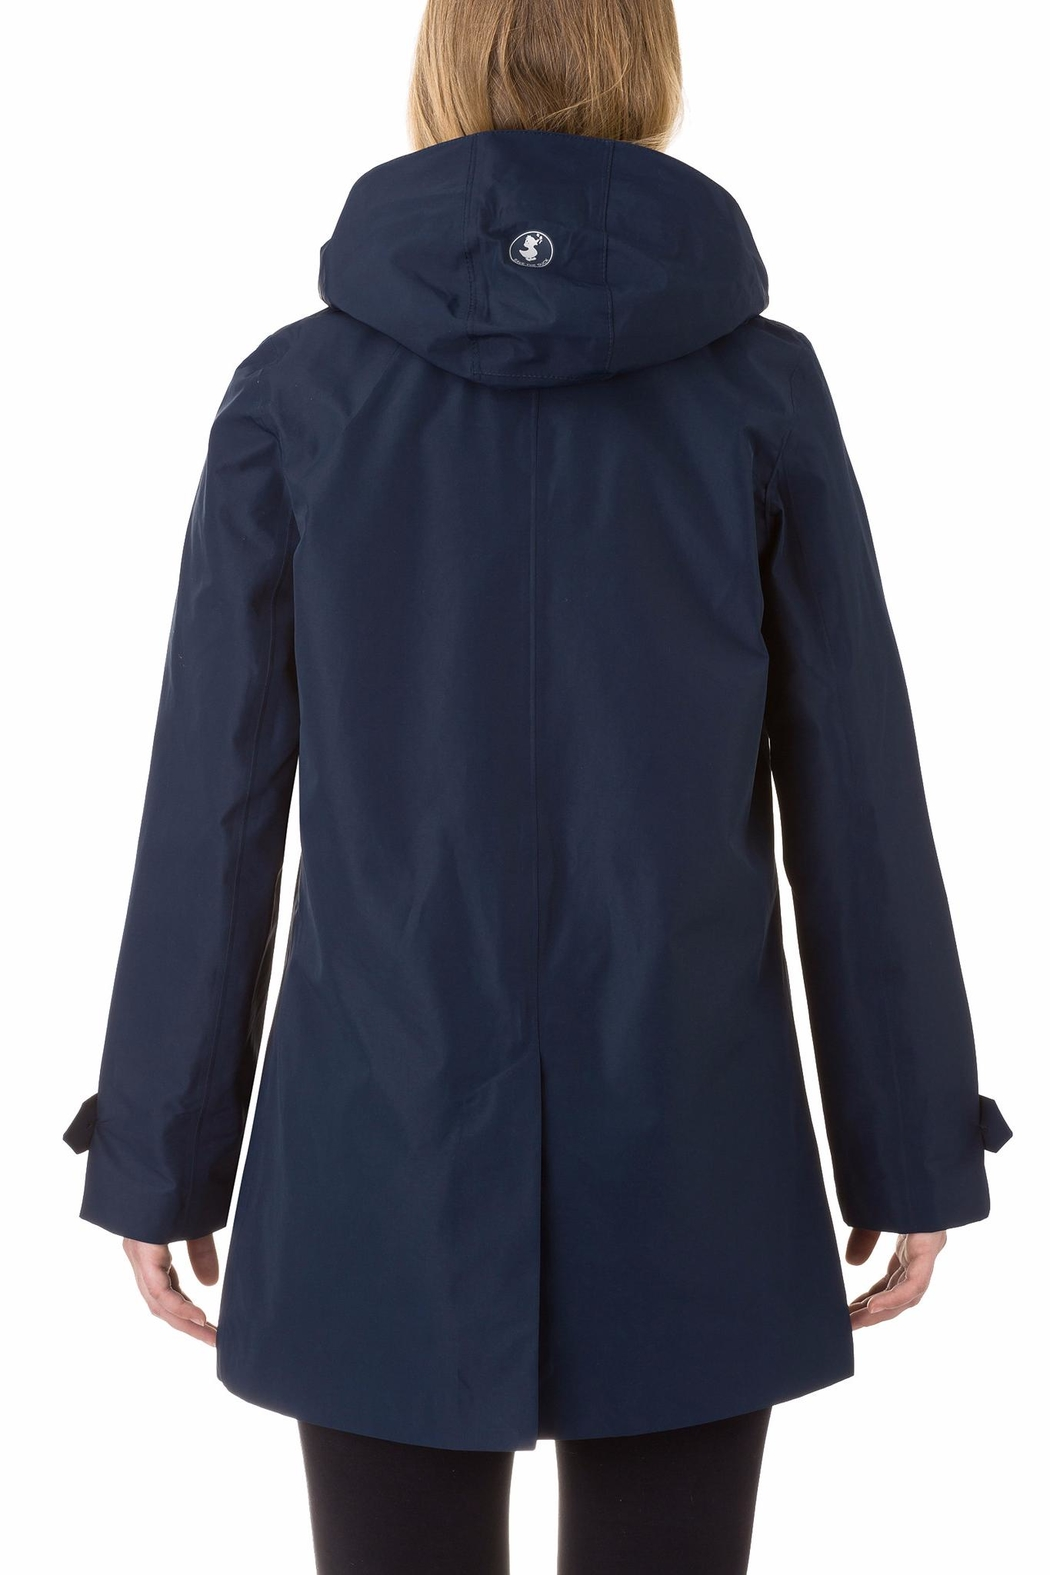 SAVE THE DUCK Buttondown Hooded Raincoat - Front Full Image